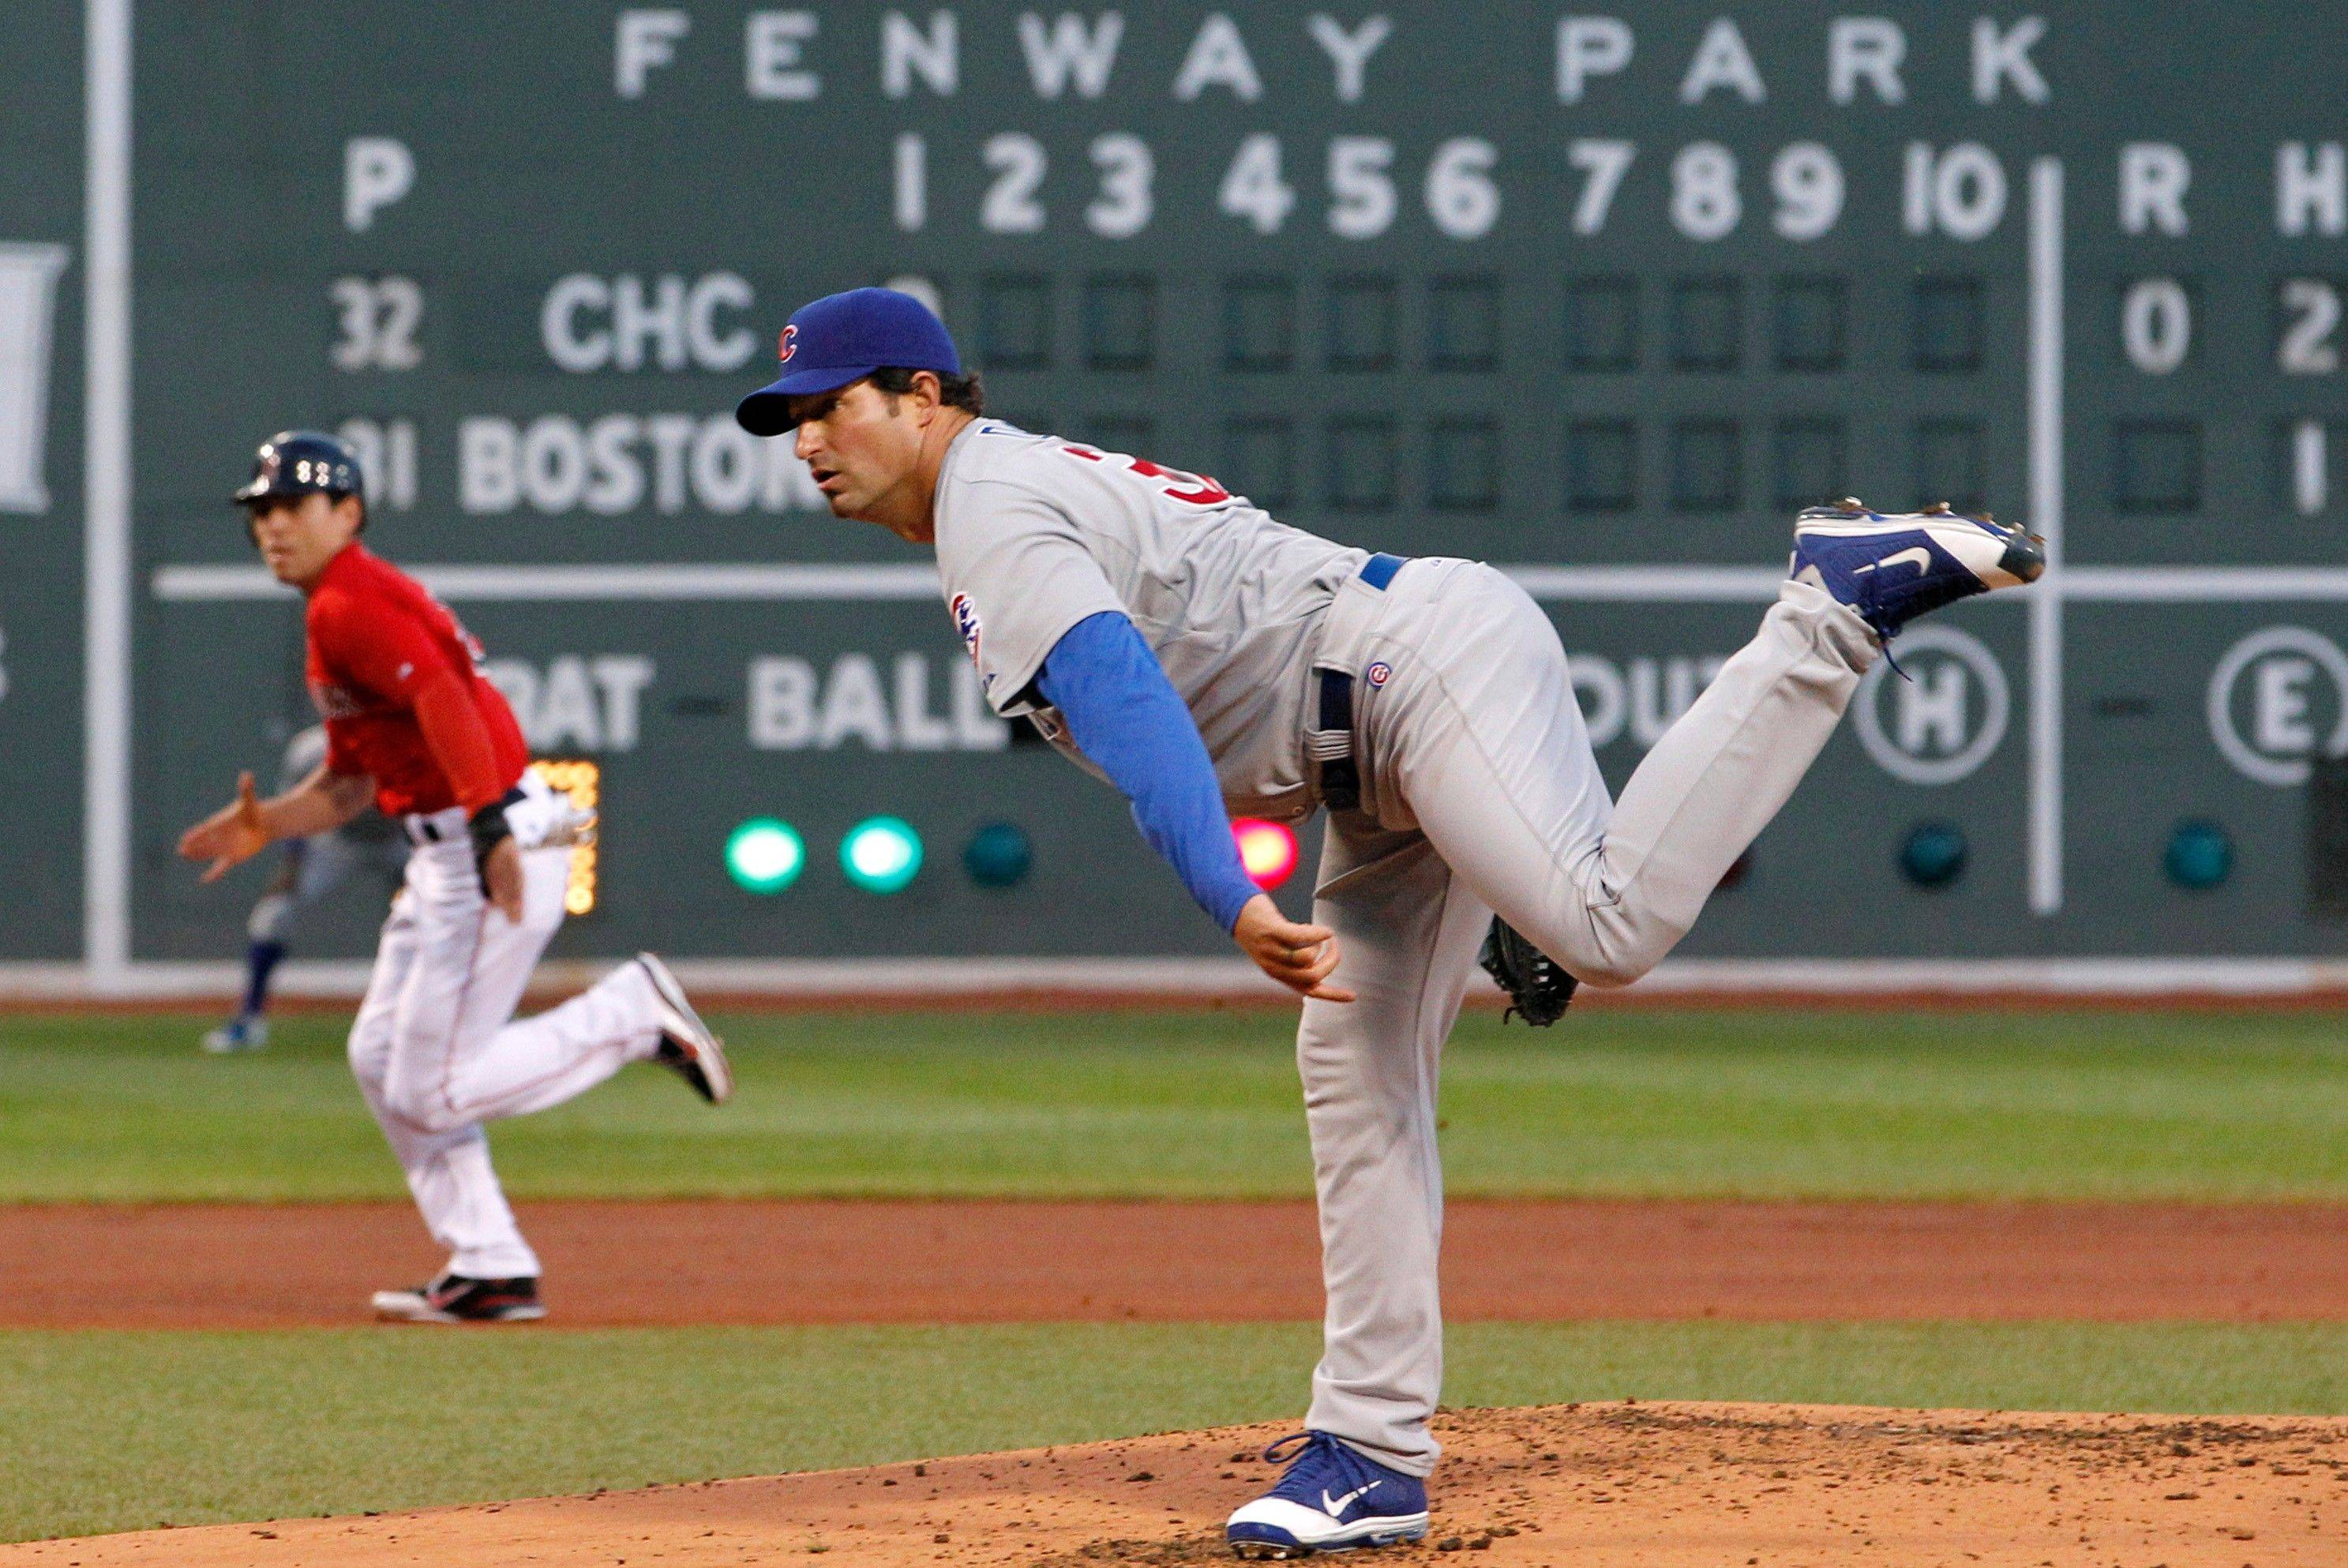 Chicago Cubs starting pitcher Doug Davis delivers as Boston Red Sox's Jacoby Ellsbury runs to steal third base in the first inning of an interleague baseball game at Fenway Park in Boston Friday, May 20, 2011.